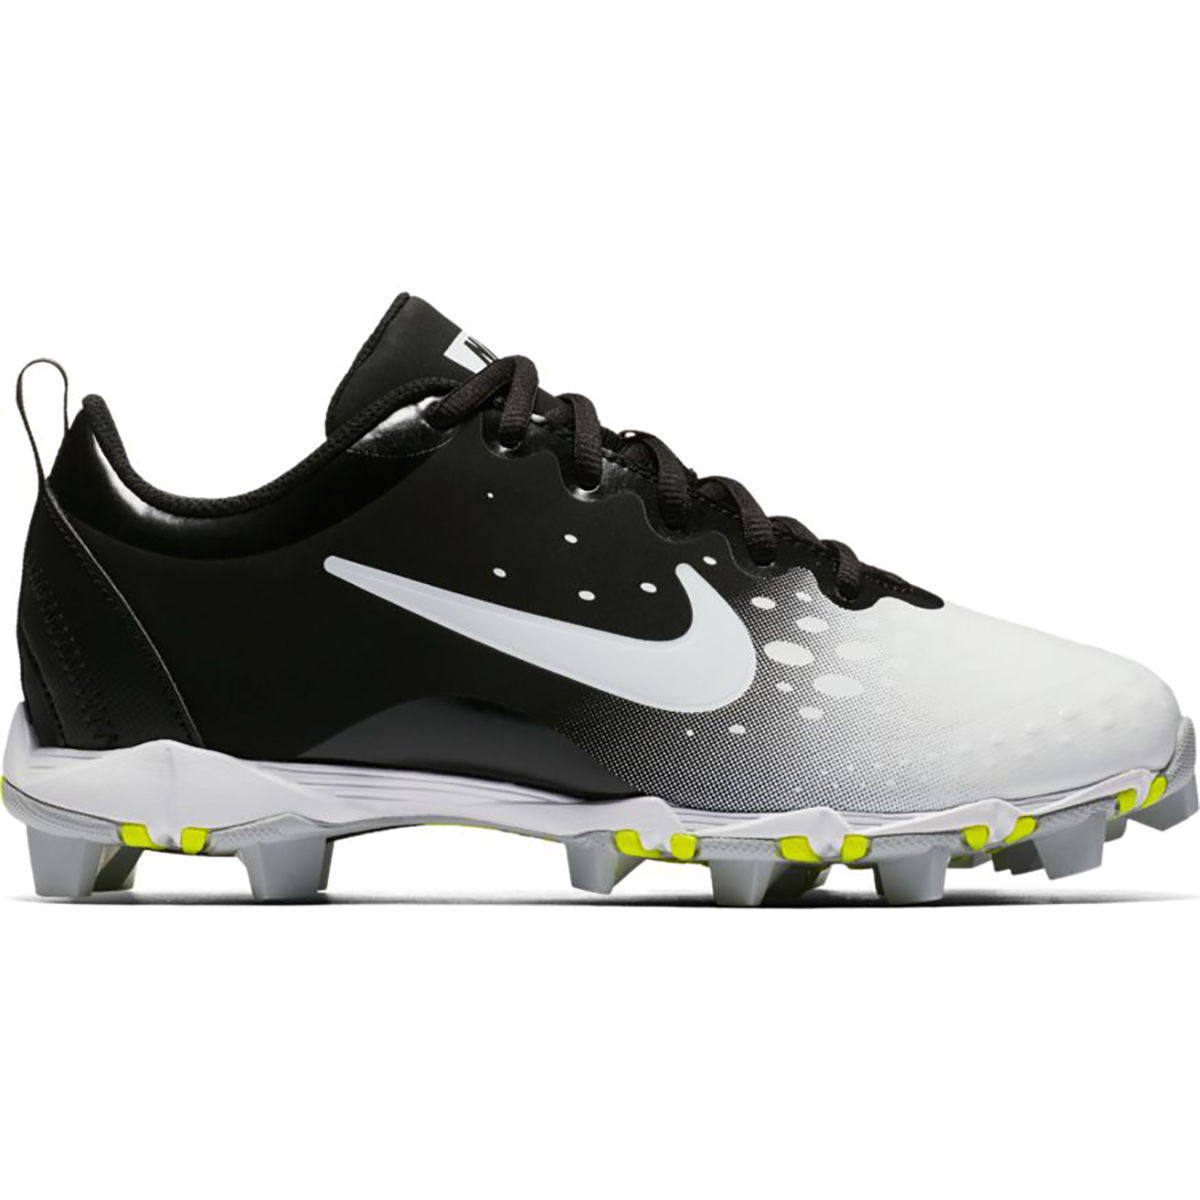 Nike Hyperdiamond 2 Keystone Grade School Girls Softball Cleat, large